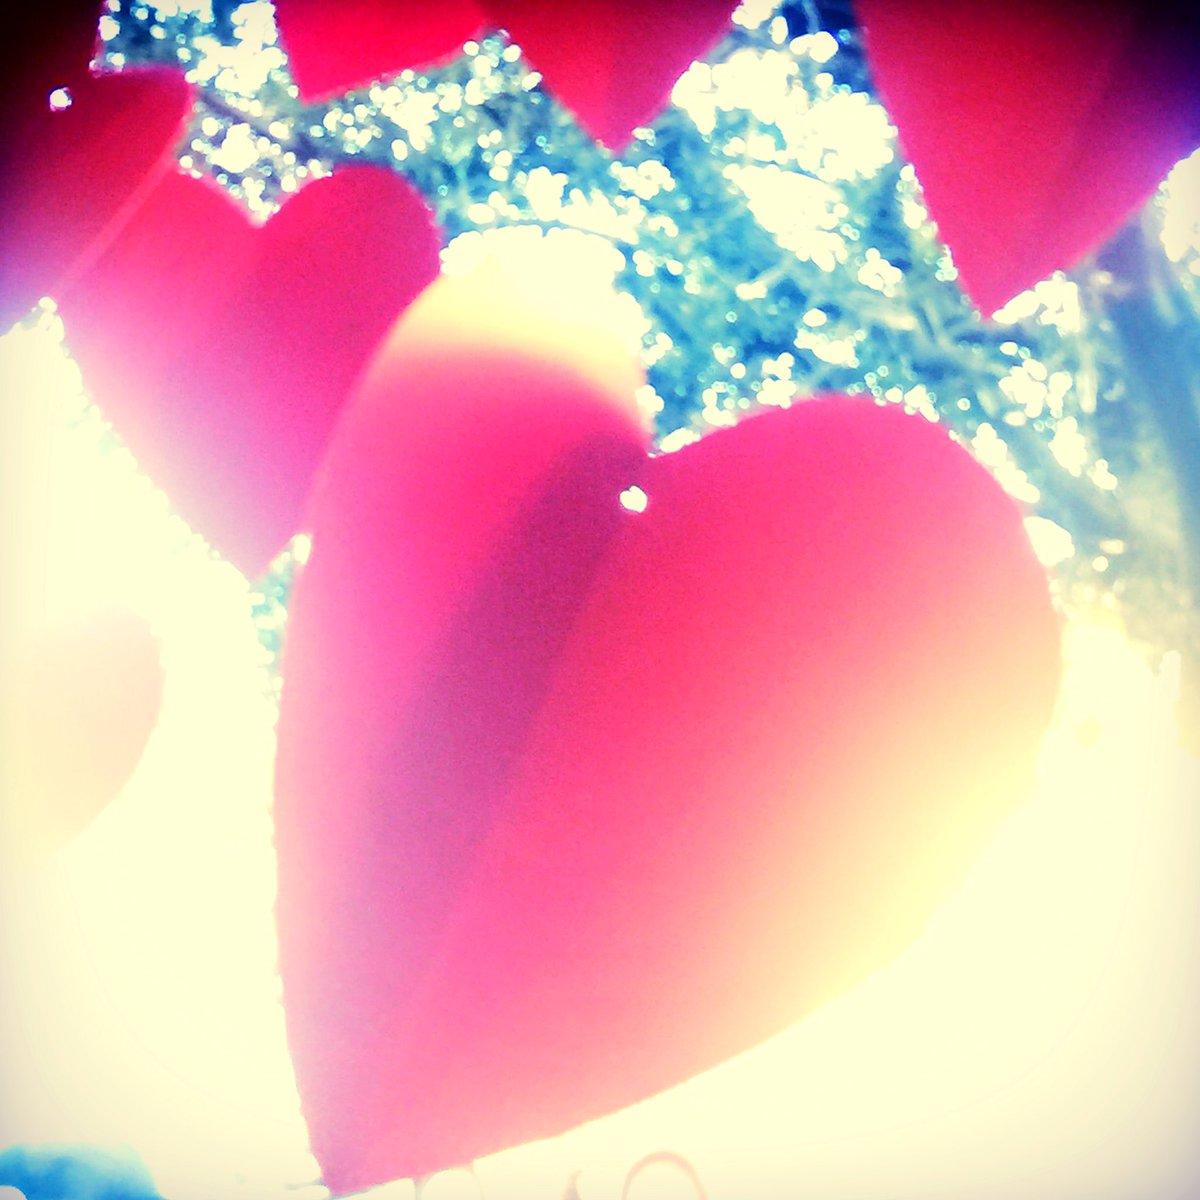 Follow your heart...it knows what's up. Happy Valentine's Day ❤ https://t.co/ItZyrxq2ND